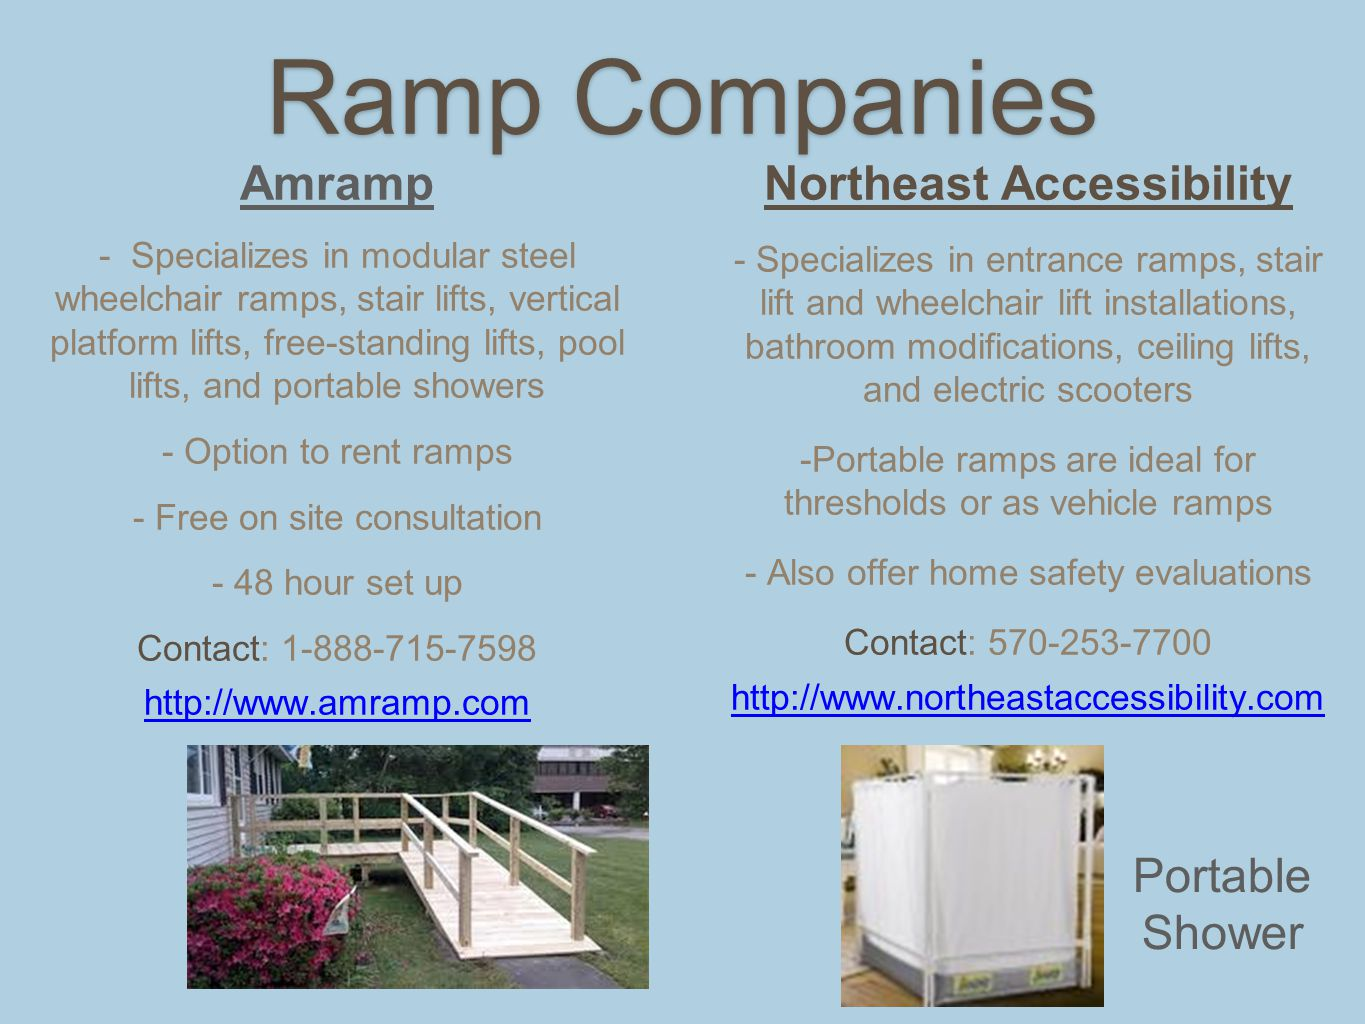 Ramp Companies Amramp - Specializes in modular steel wheelchair ramps, stair lifts, vertical platform lifts, free-standing lifts, pool lifts, and portable showers - Option to rent ramps - Free on site consultation - 48 hour set up Contact: 1-888-715-7598 http://www.amramp.com Northeast Accessibility - Specializes in entrance ramps, stair lift and wheelchair lift installations, bathroom modifications, ceiling lifts, and electric scooters -Portable ramps are ideal for thresholds or as vehicle ramps - Also offer home safety evaluations Contact: 570-253-7700 http://www.northeastaccessibility.com Portable Shower